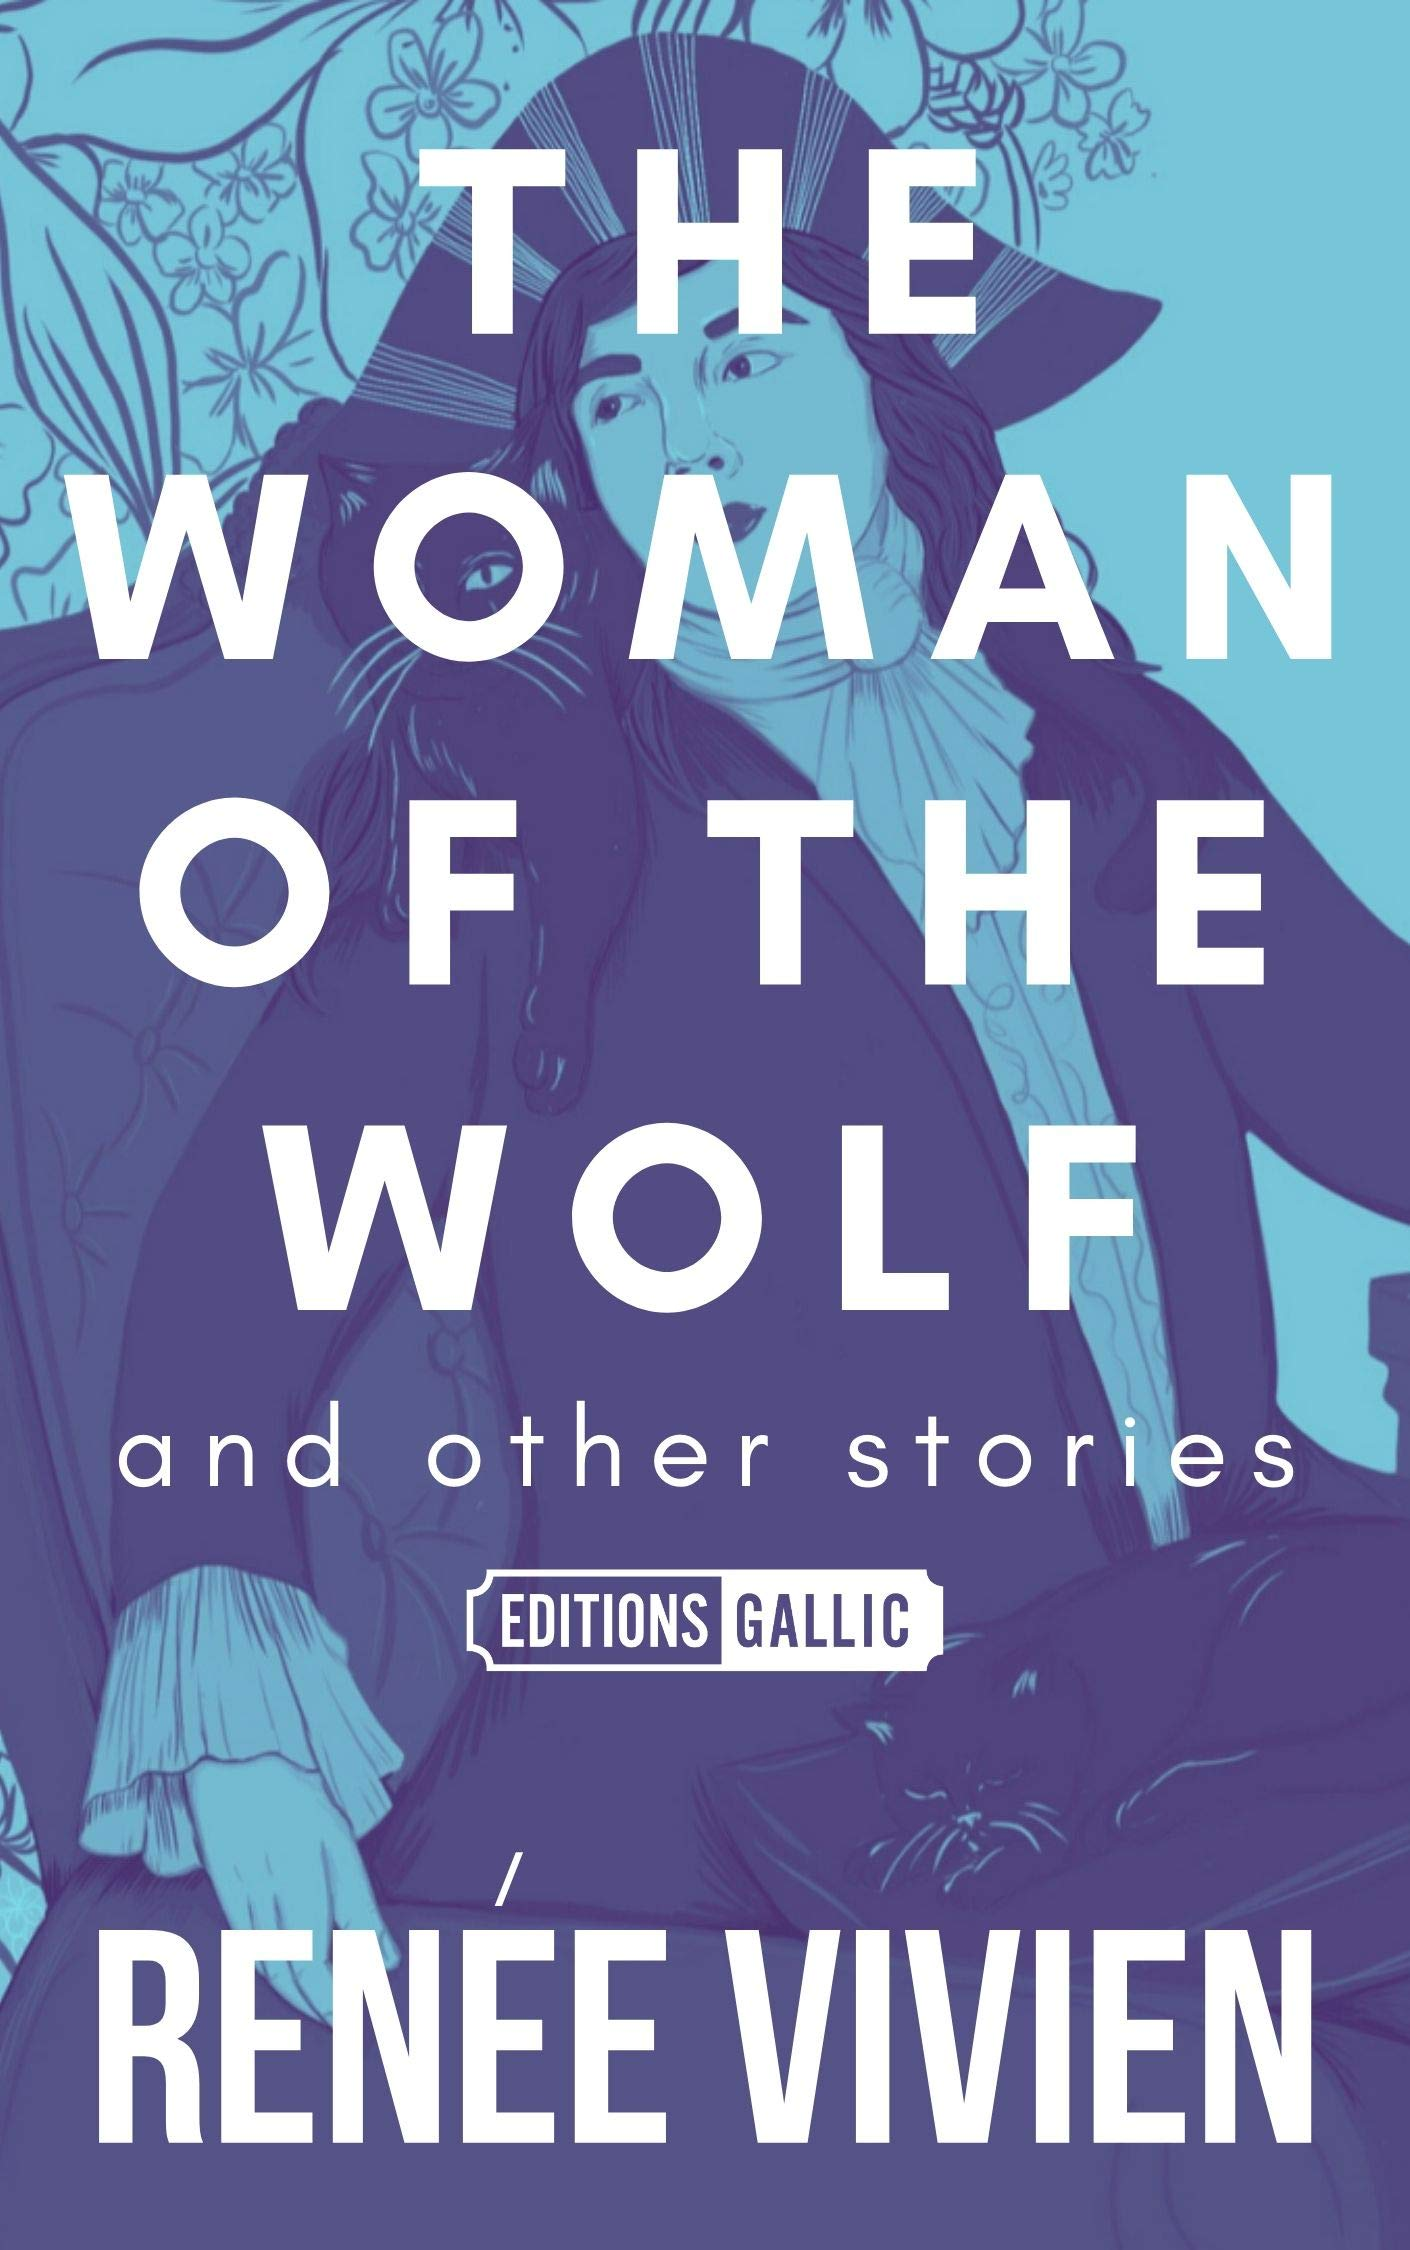 The Woman of the Wolf and Other Stories by Karla Jay, Renée Vivien, Yvonne M. Klein